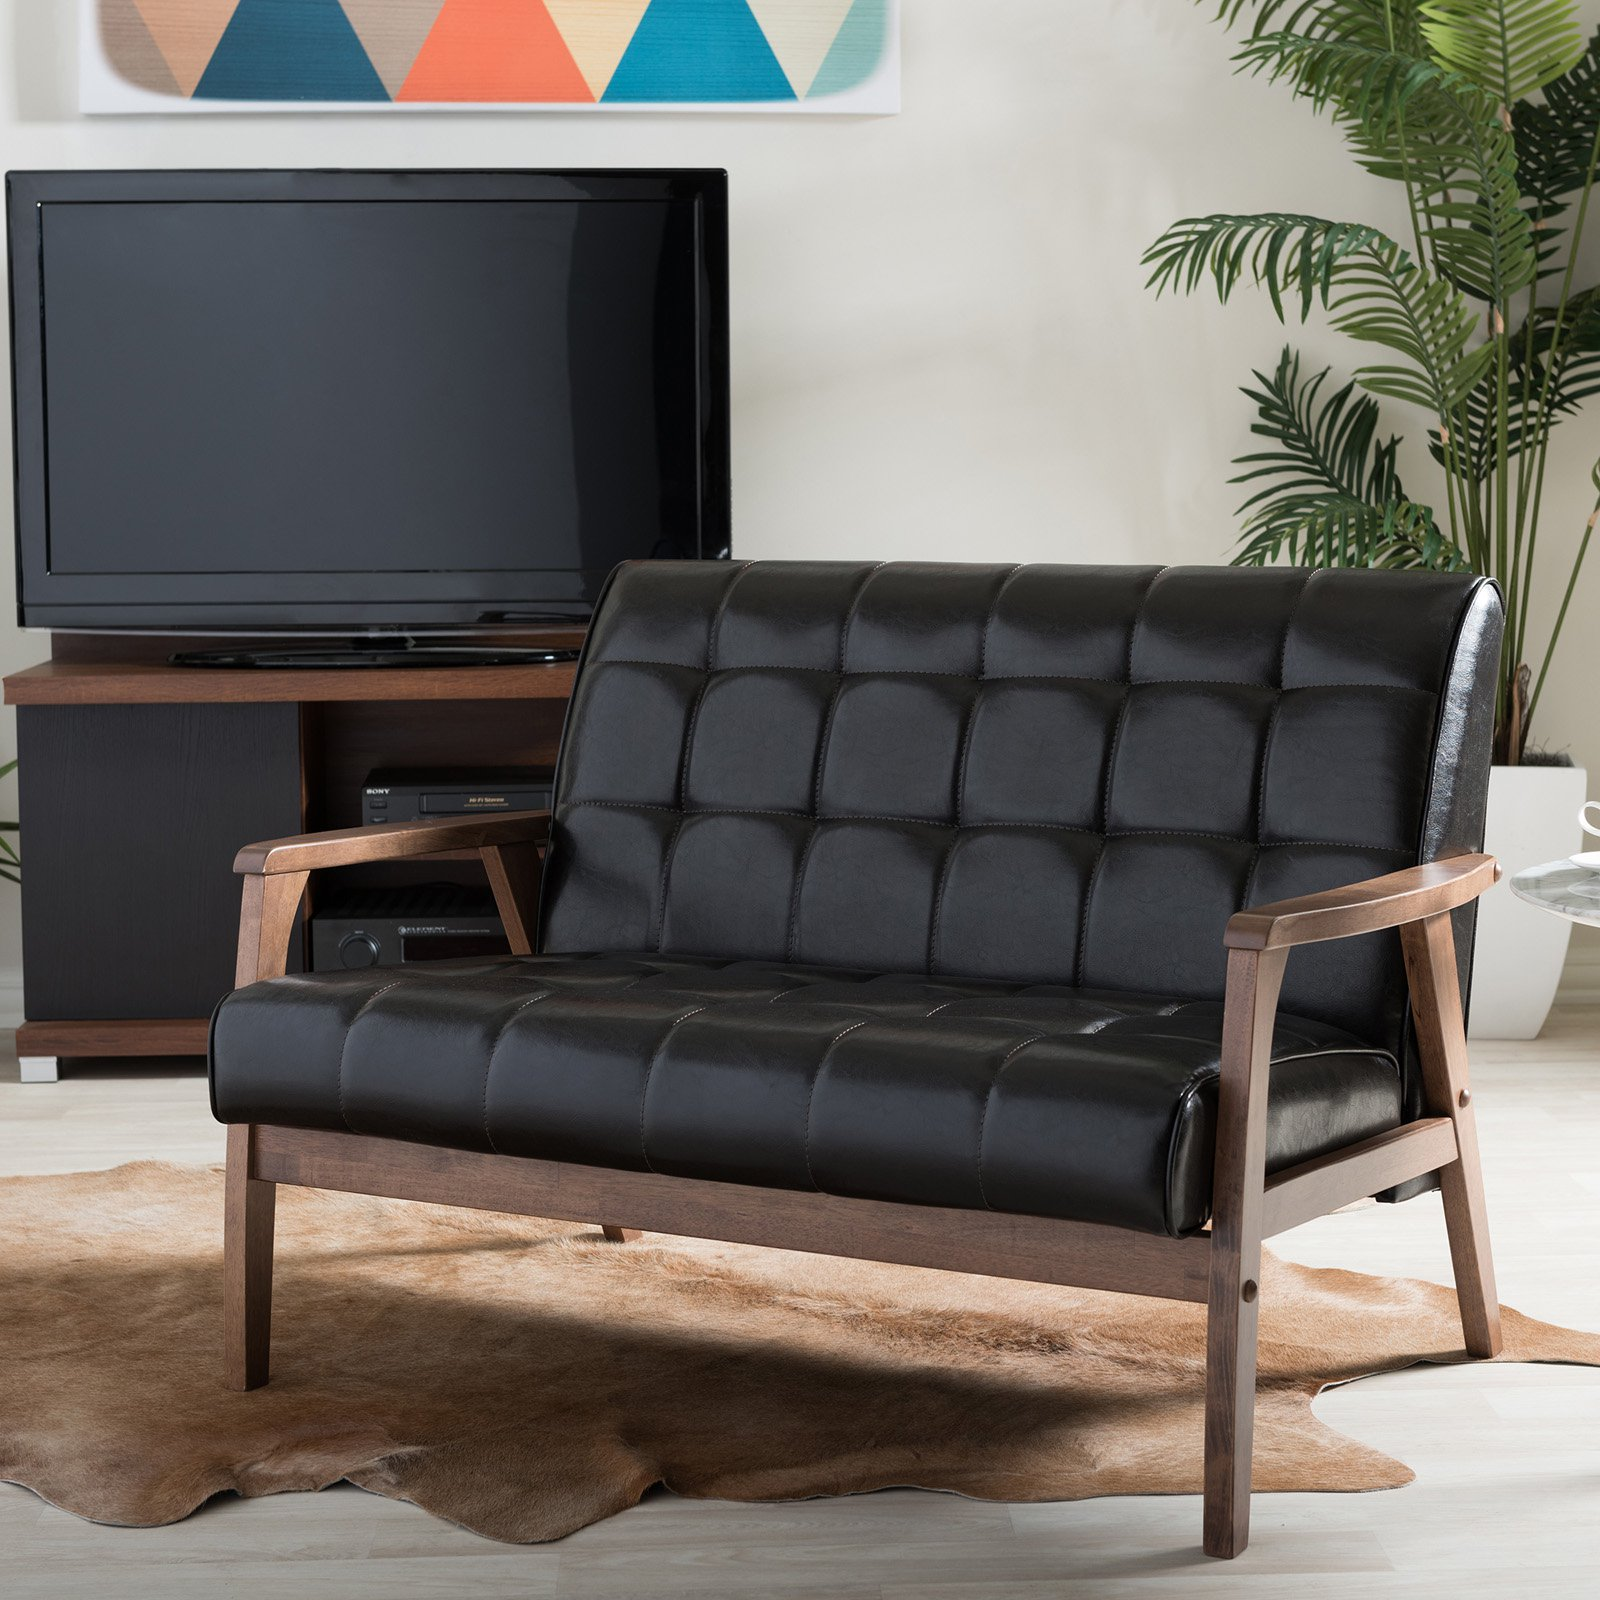 Baxton Studio Mid-Century Masterpieces Loveseat - Brown